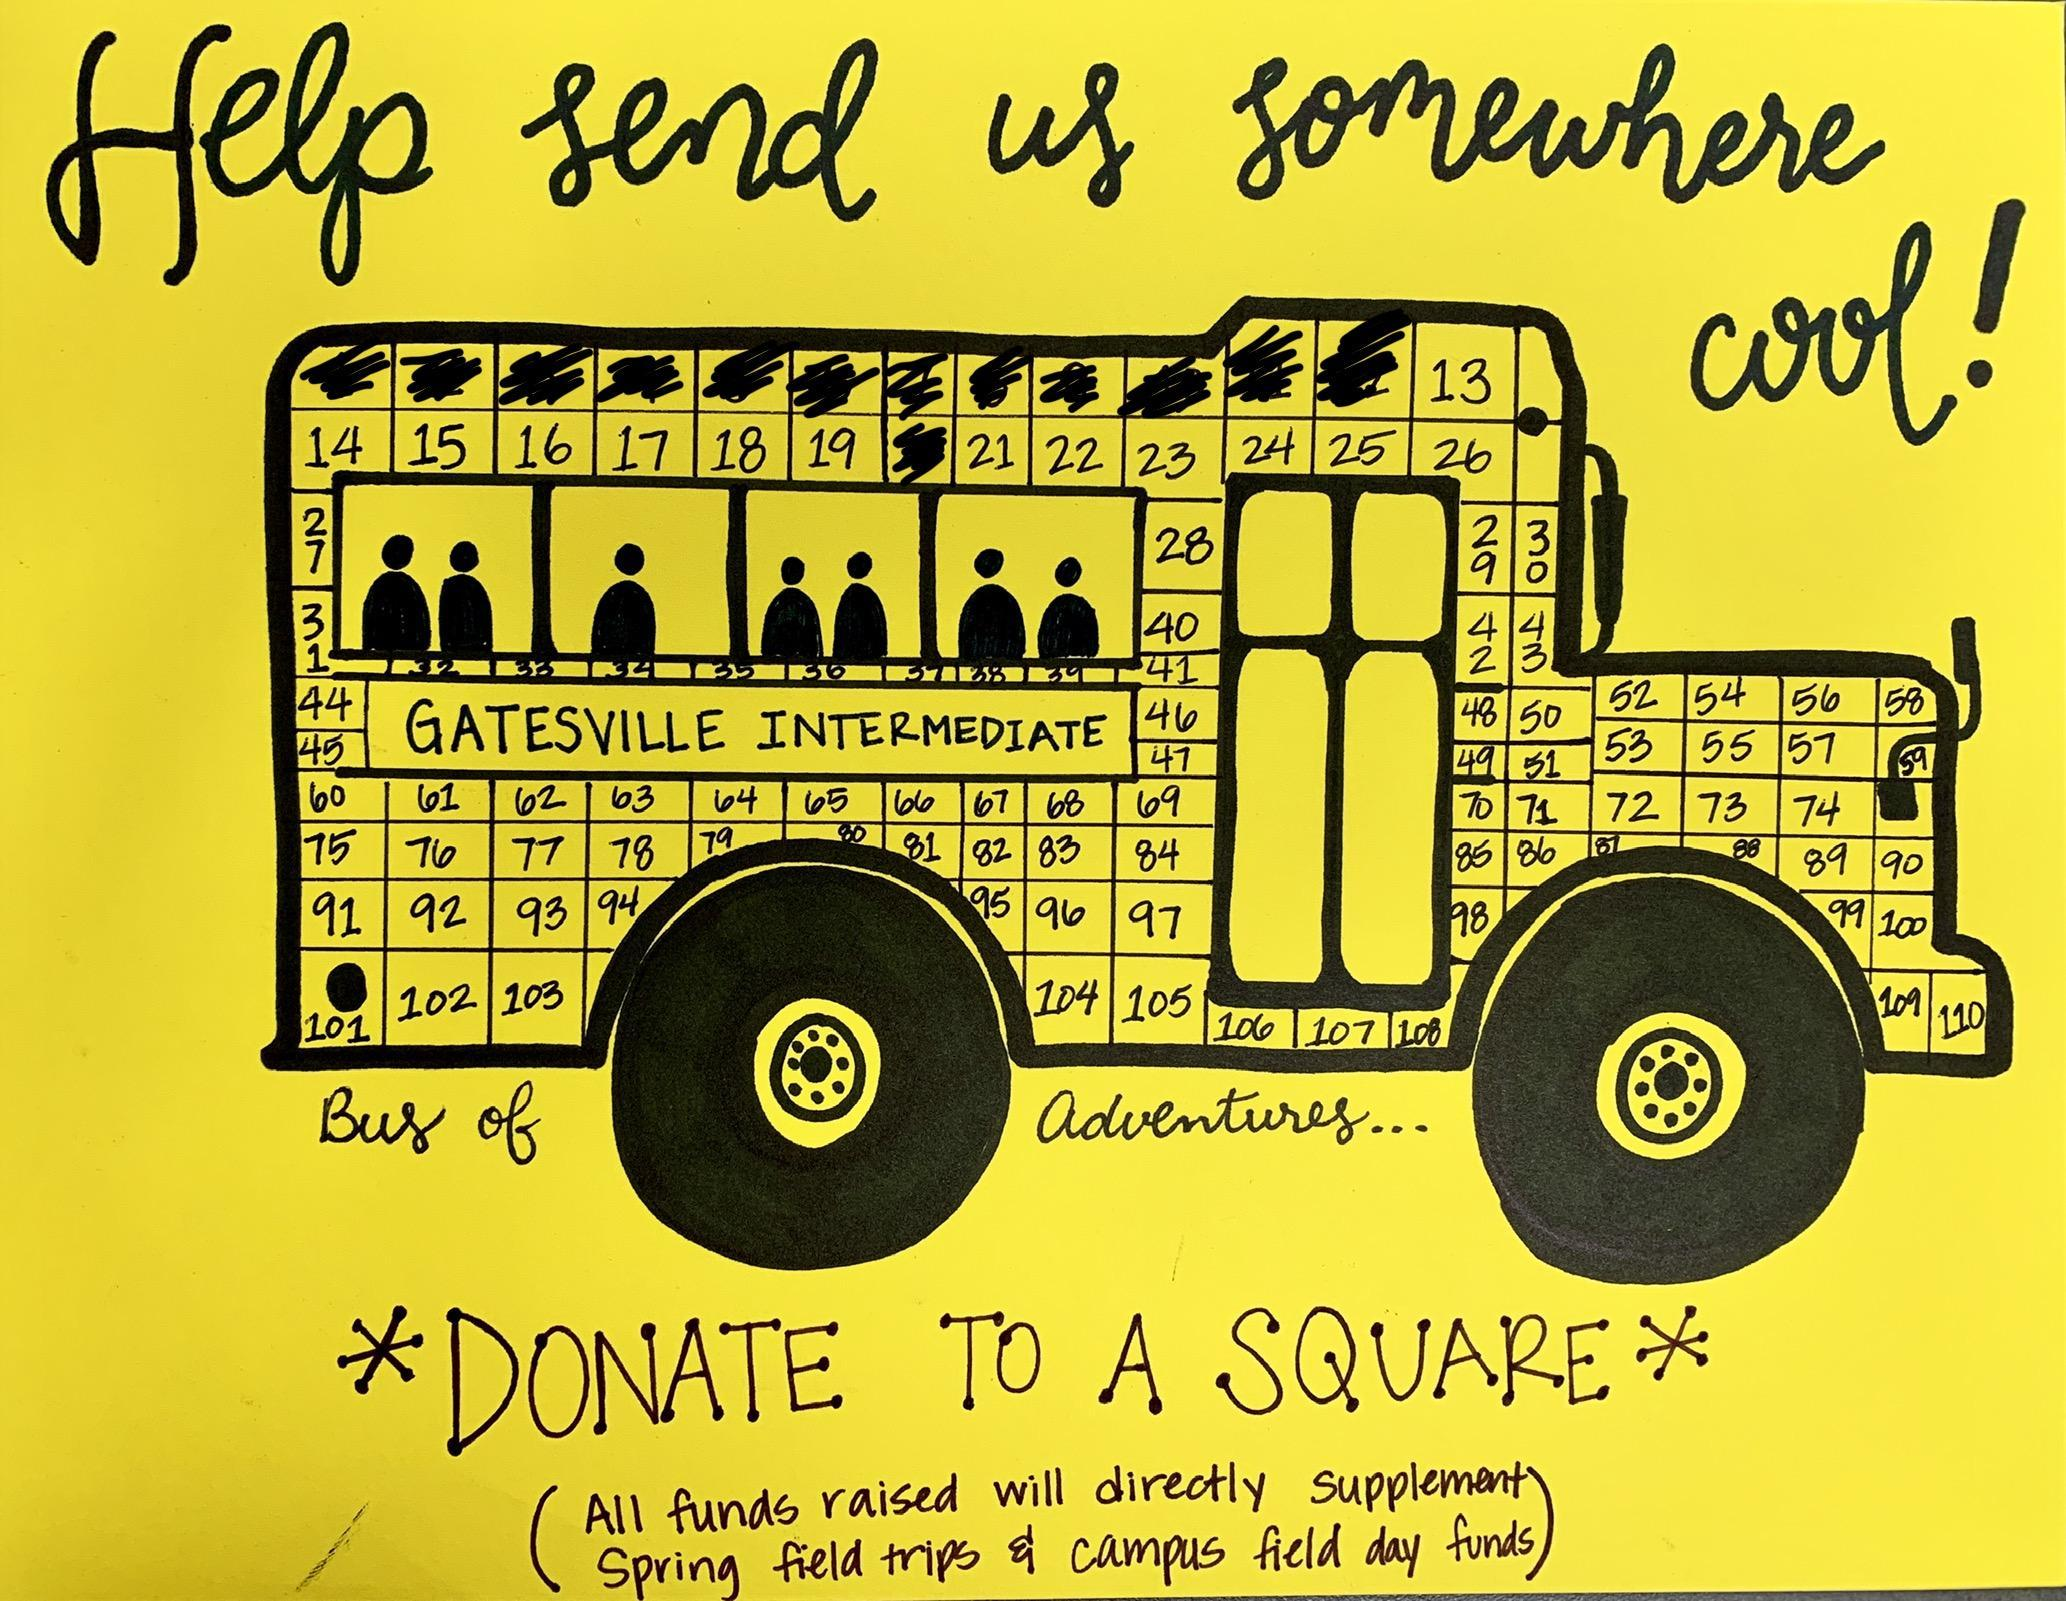 Hop aboard and help send our students on the educational trip of a lifetime! Pick a square and donate!